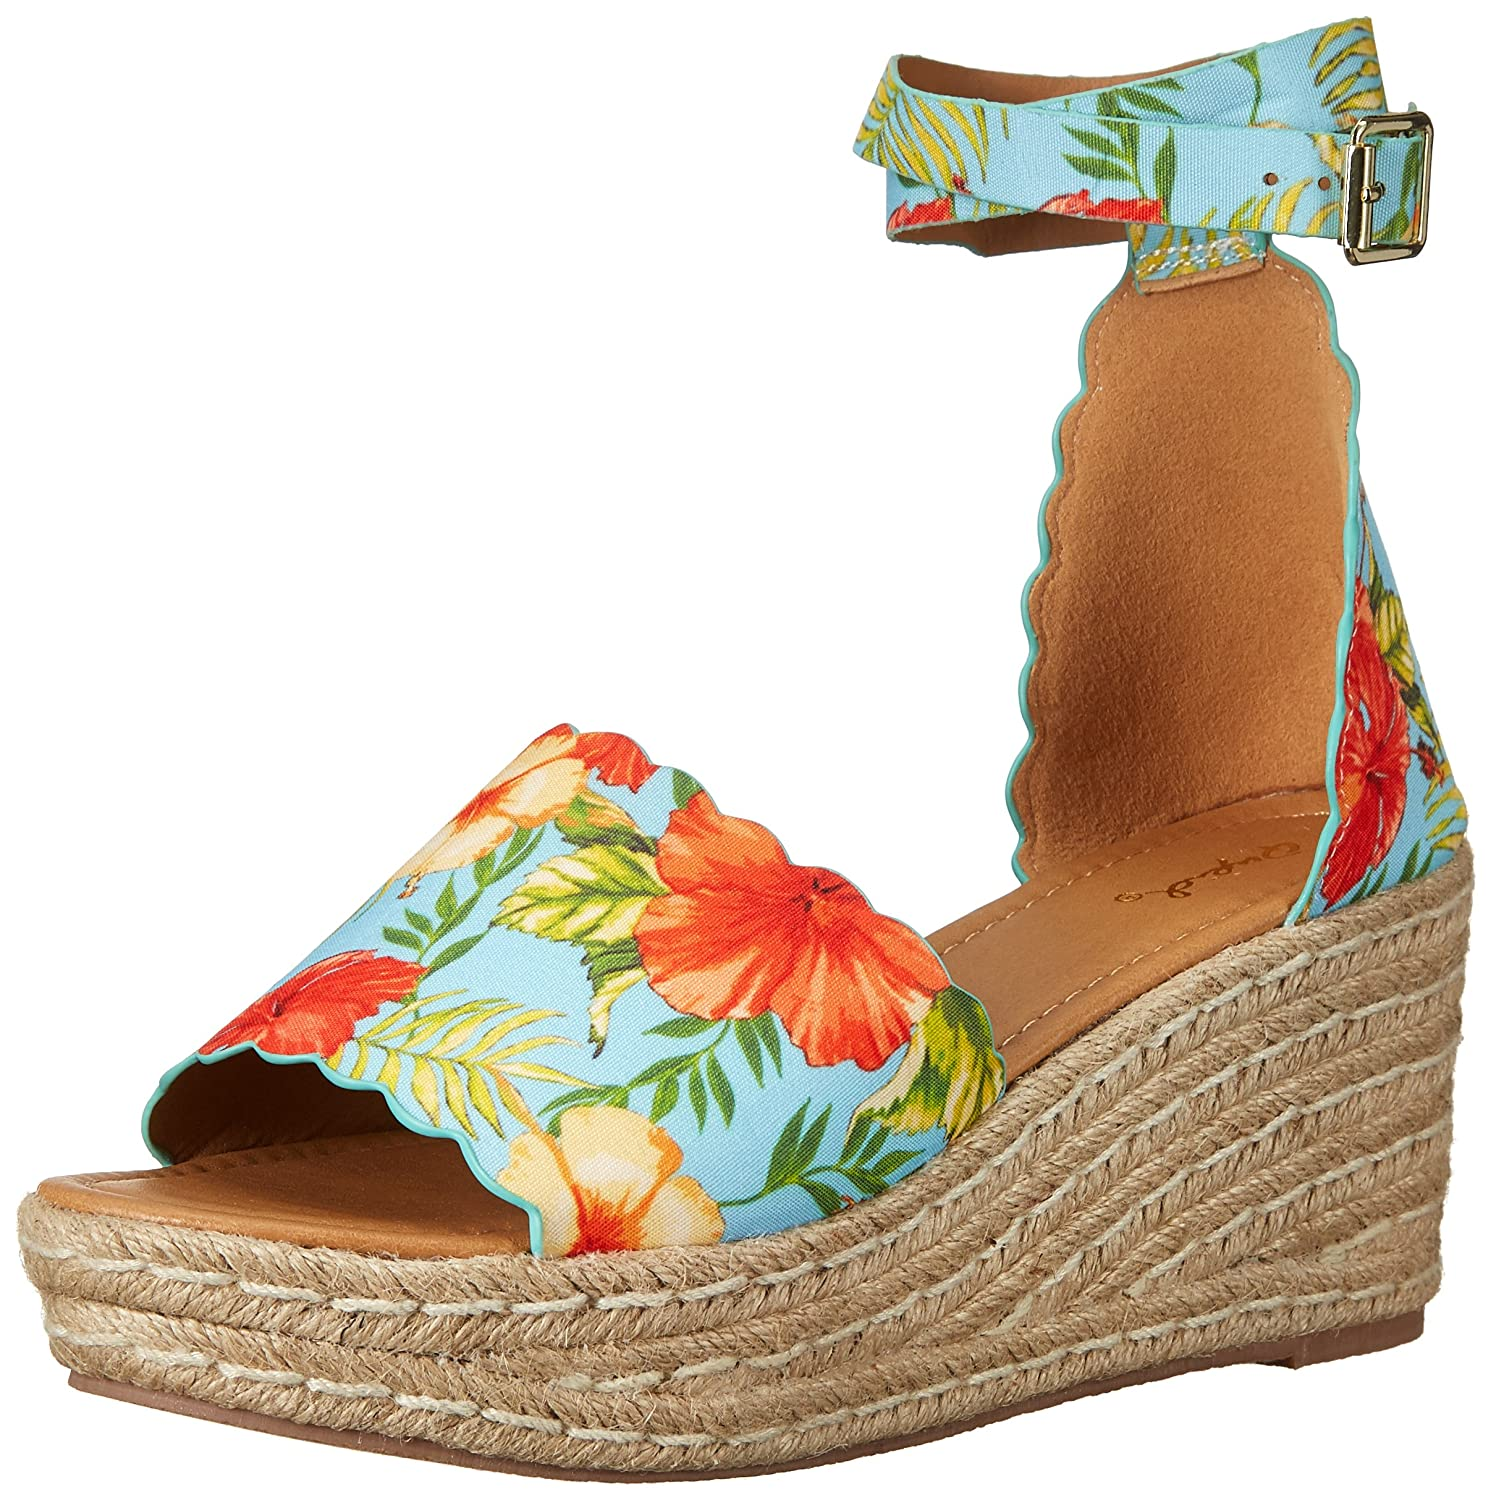 Qupid Women's Espadrille Wedge Sandal B079KNW1GF 6.5 B(M) US|Blu/Orange